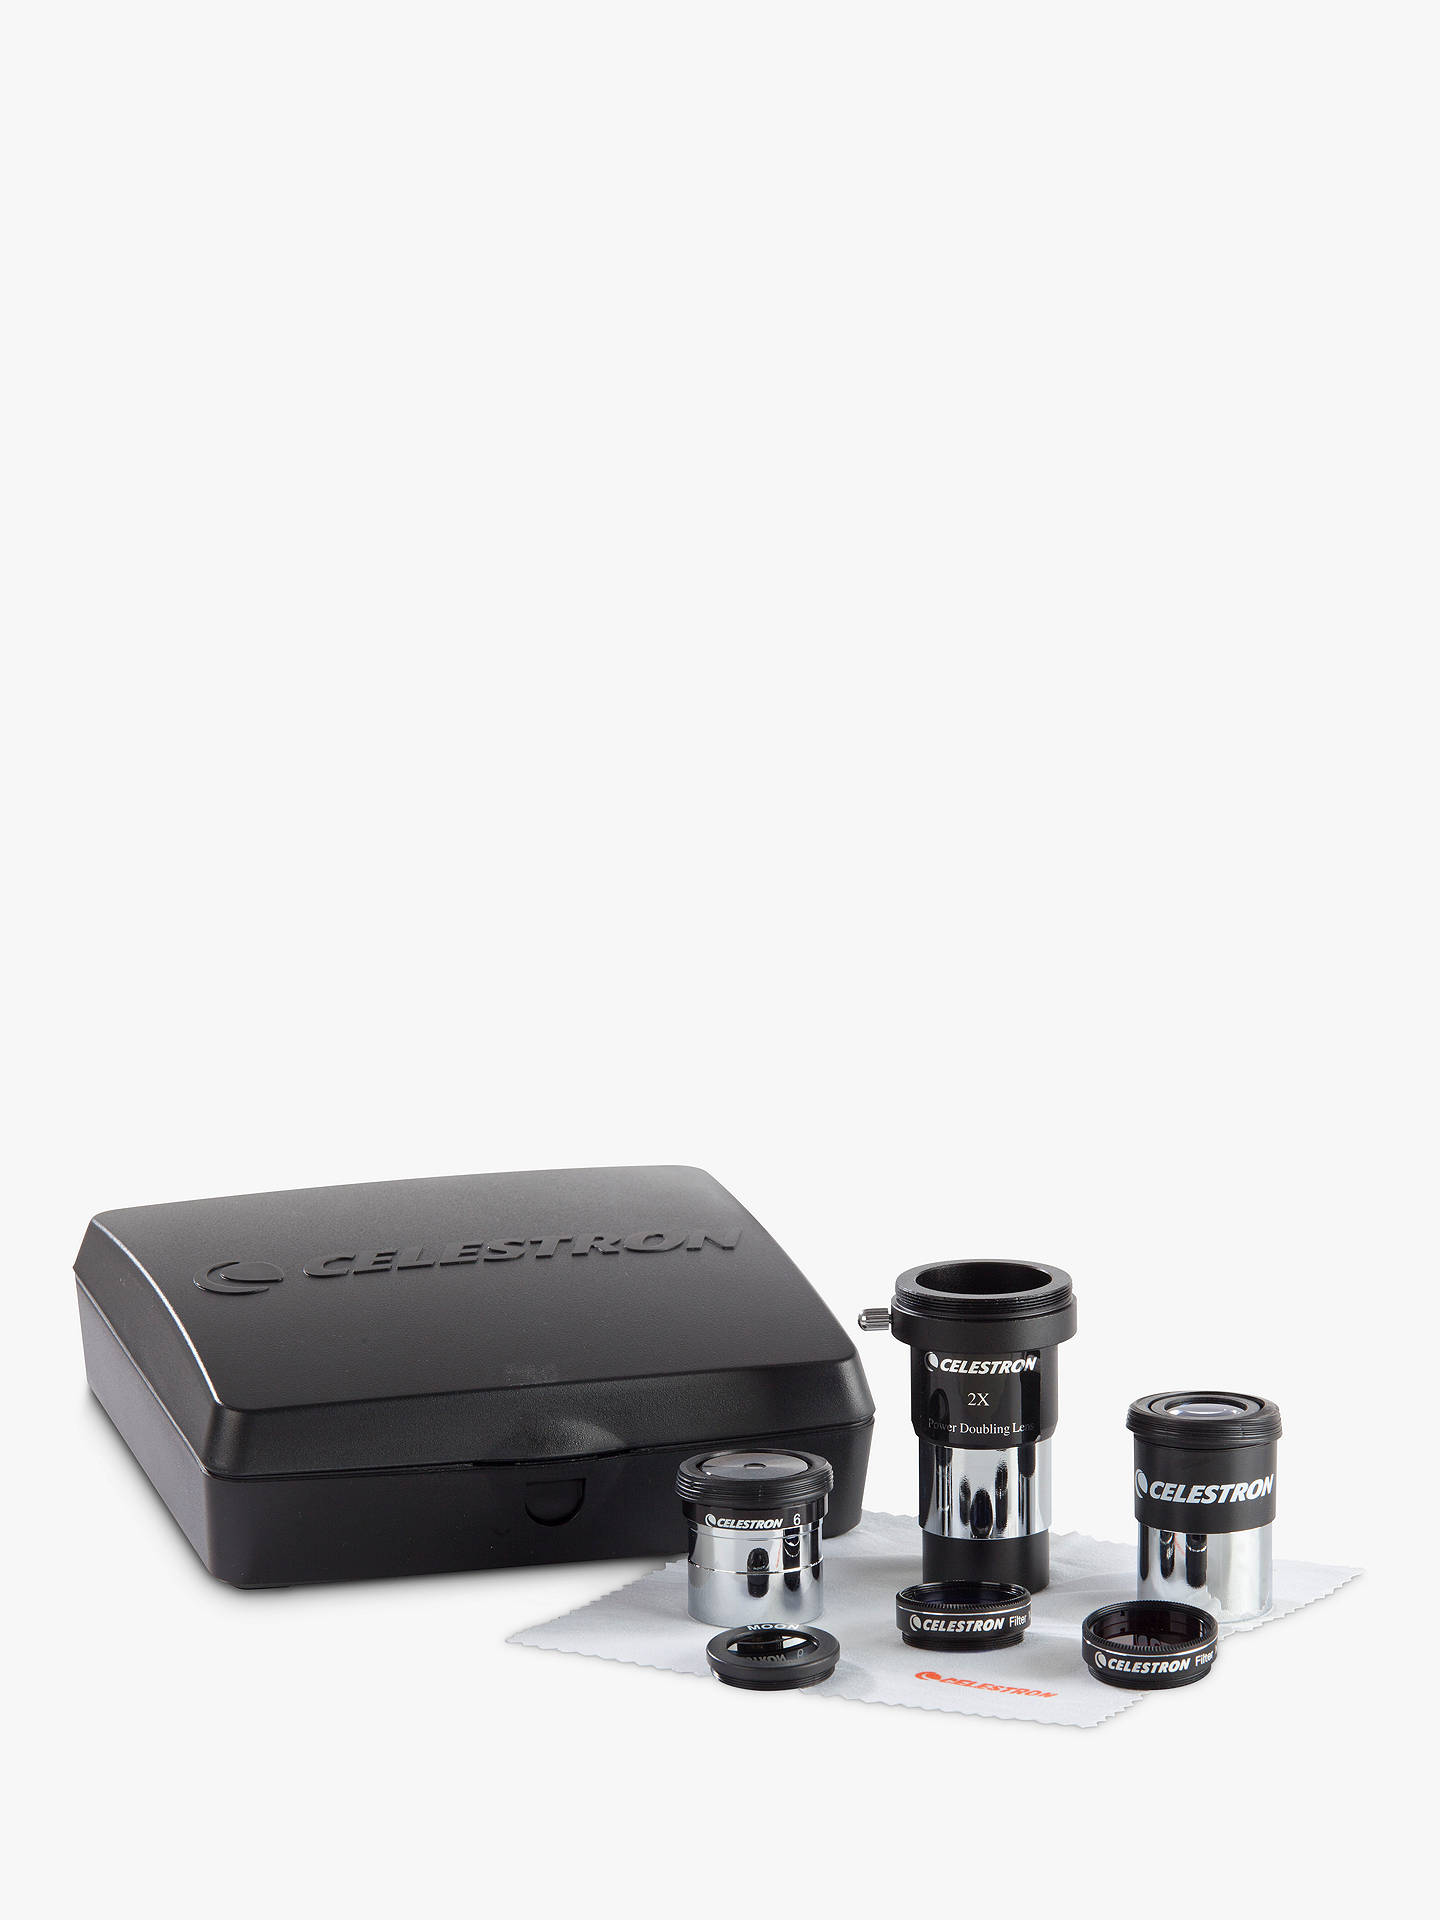 Buy Celestron Astromaster Telescope Accessory Kit Online at johnlewis.com